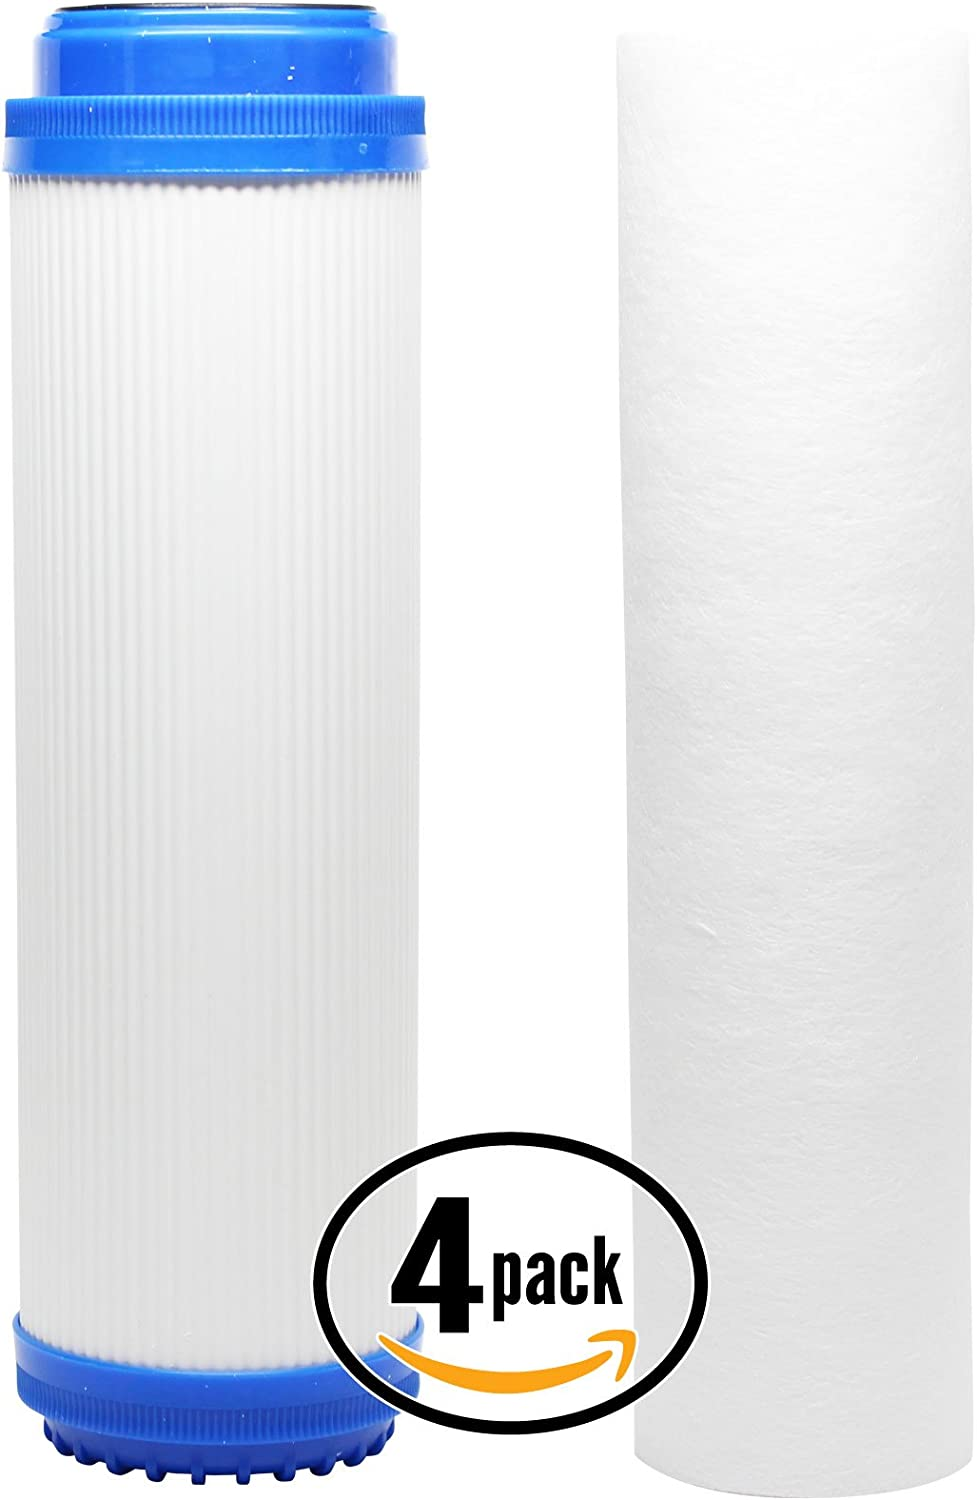 Denali Pure Brand Universal 10-inch 5-Micron Cartridge Compatible with Aqua Pure SST1HA Industrial Grade Water Filter 6-Pack Replacement for Aqua Pure SST1HA Polypropylene Sediment Filter